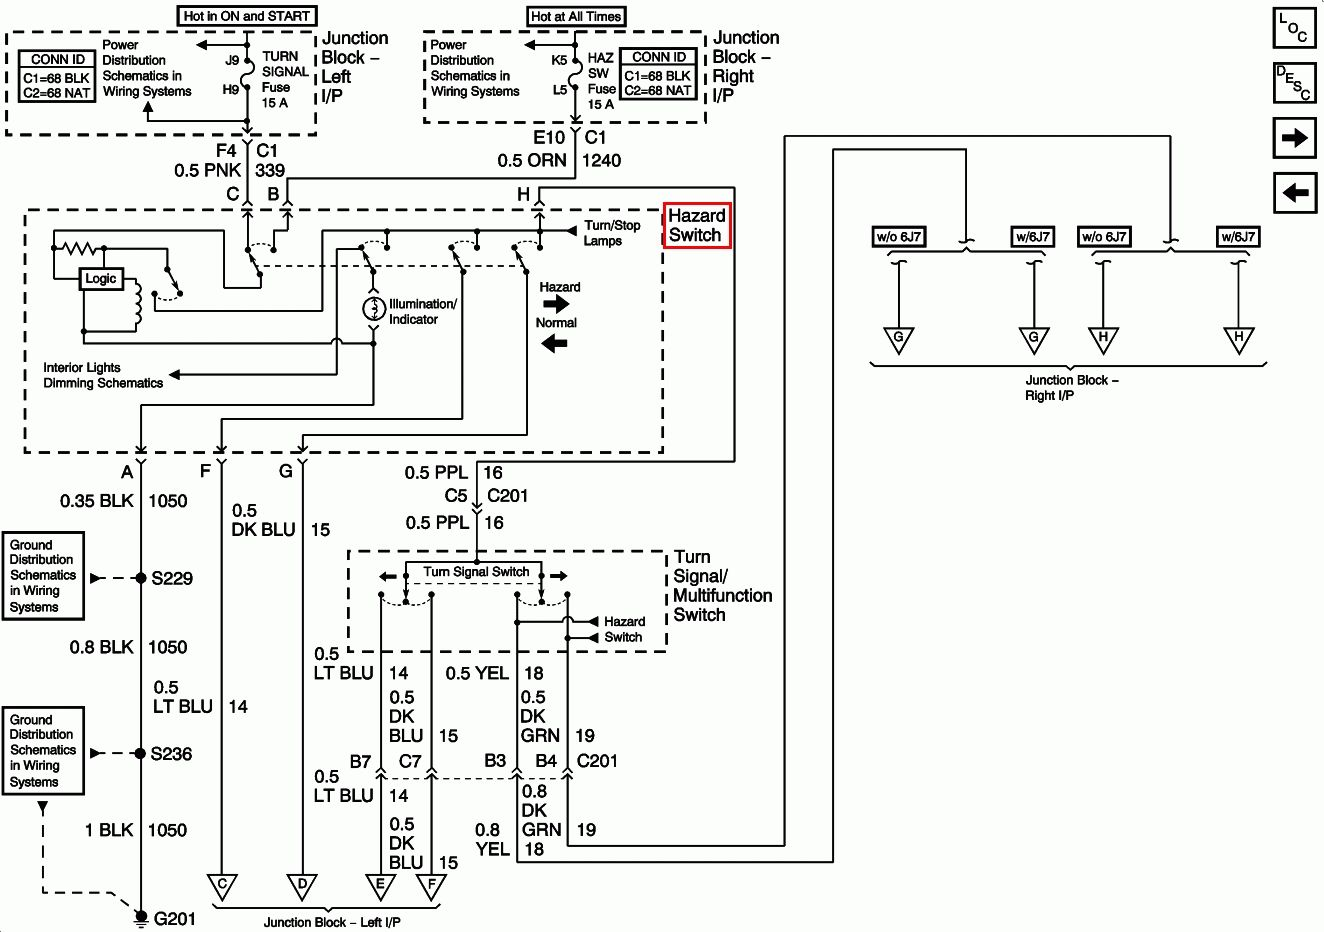 diagram] 1968 chevy impala turn signal wiring diagram full version hd  quality wiring diagram - cluster-diagrams.lrpol.fr  diagram database - lrpol.fr